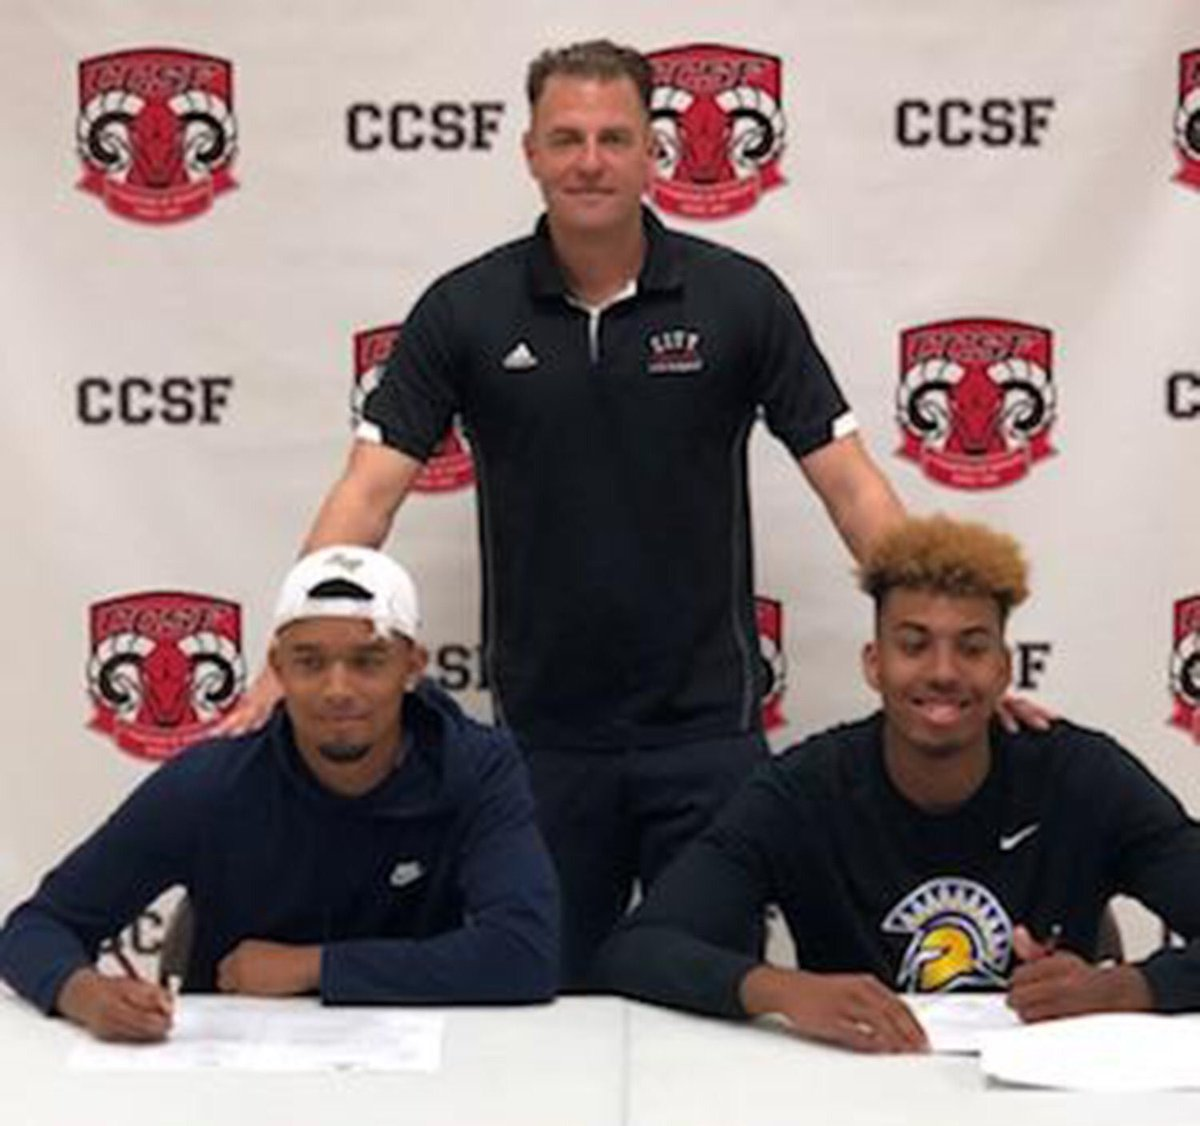 Eddie Stansberry, left to right, Coach Labagh, and Michael Steadman sign to four-year universities on April 16, 2018. Photo courtesy of CCSF Athletic Department.